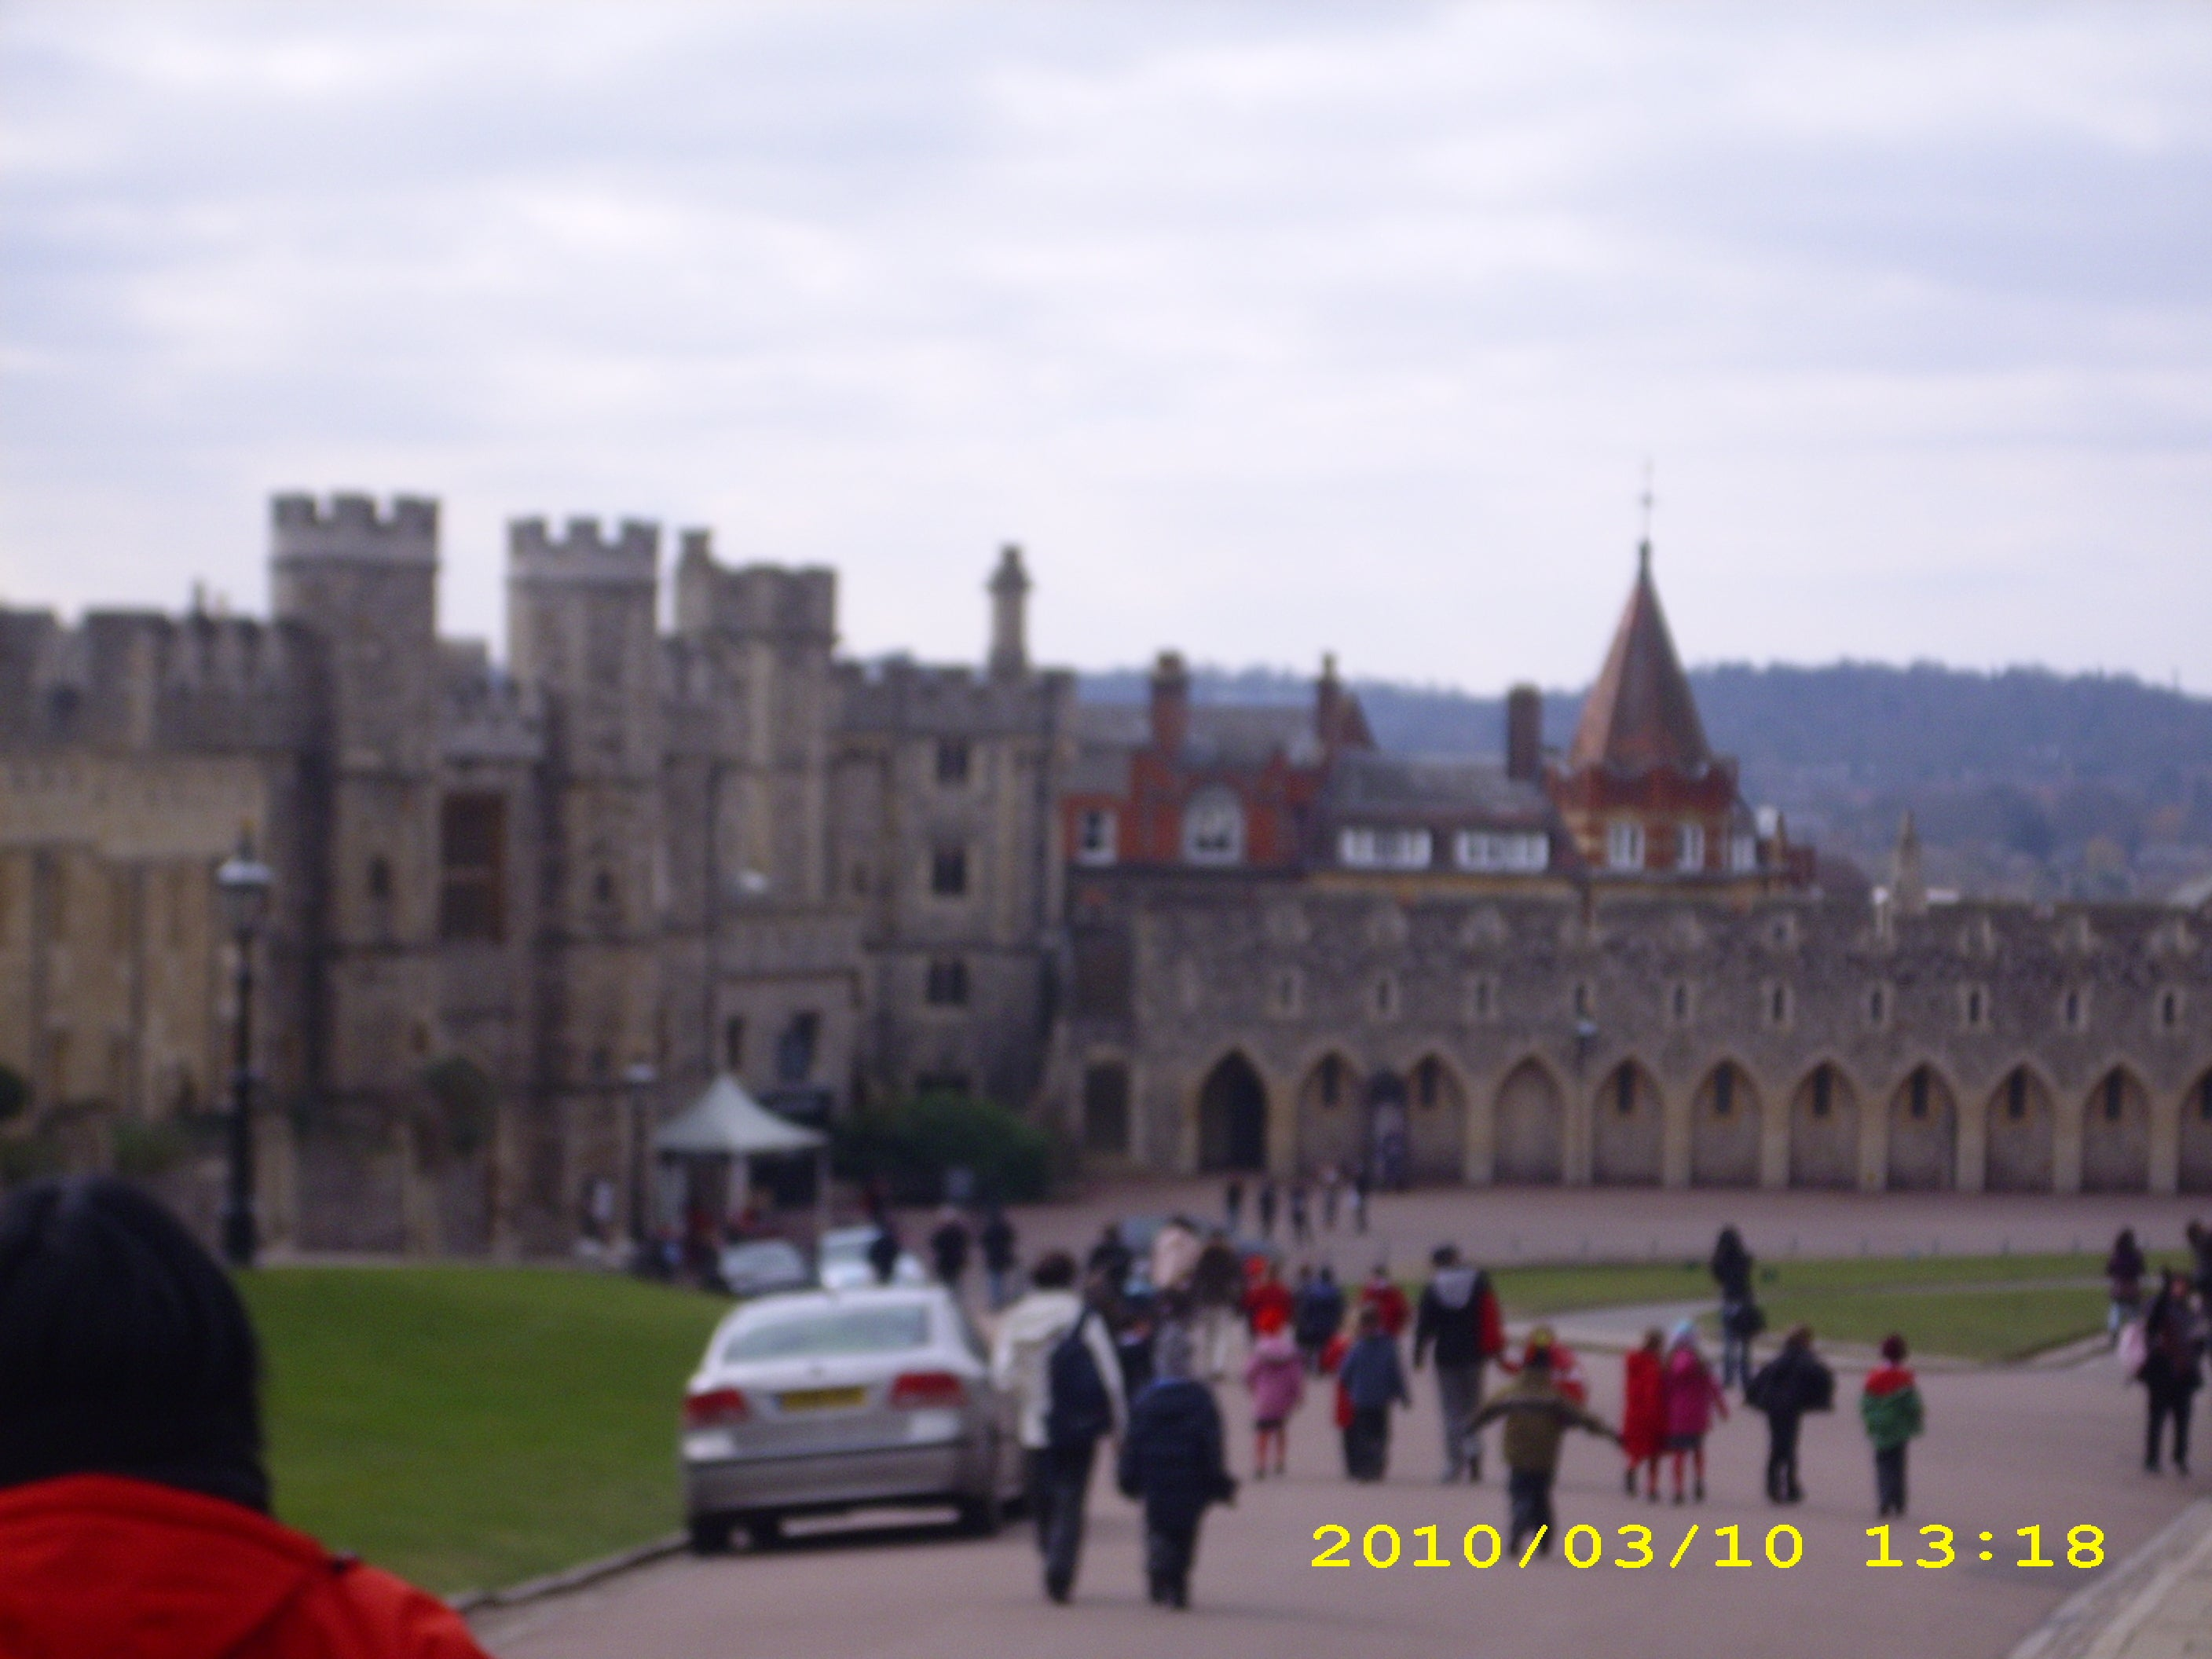 Palacio en Castillo de Windsor